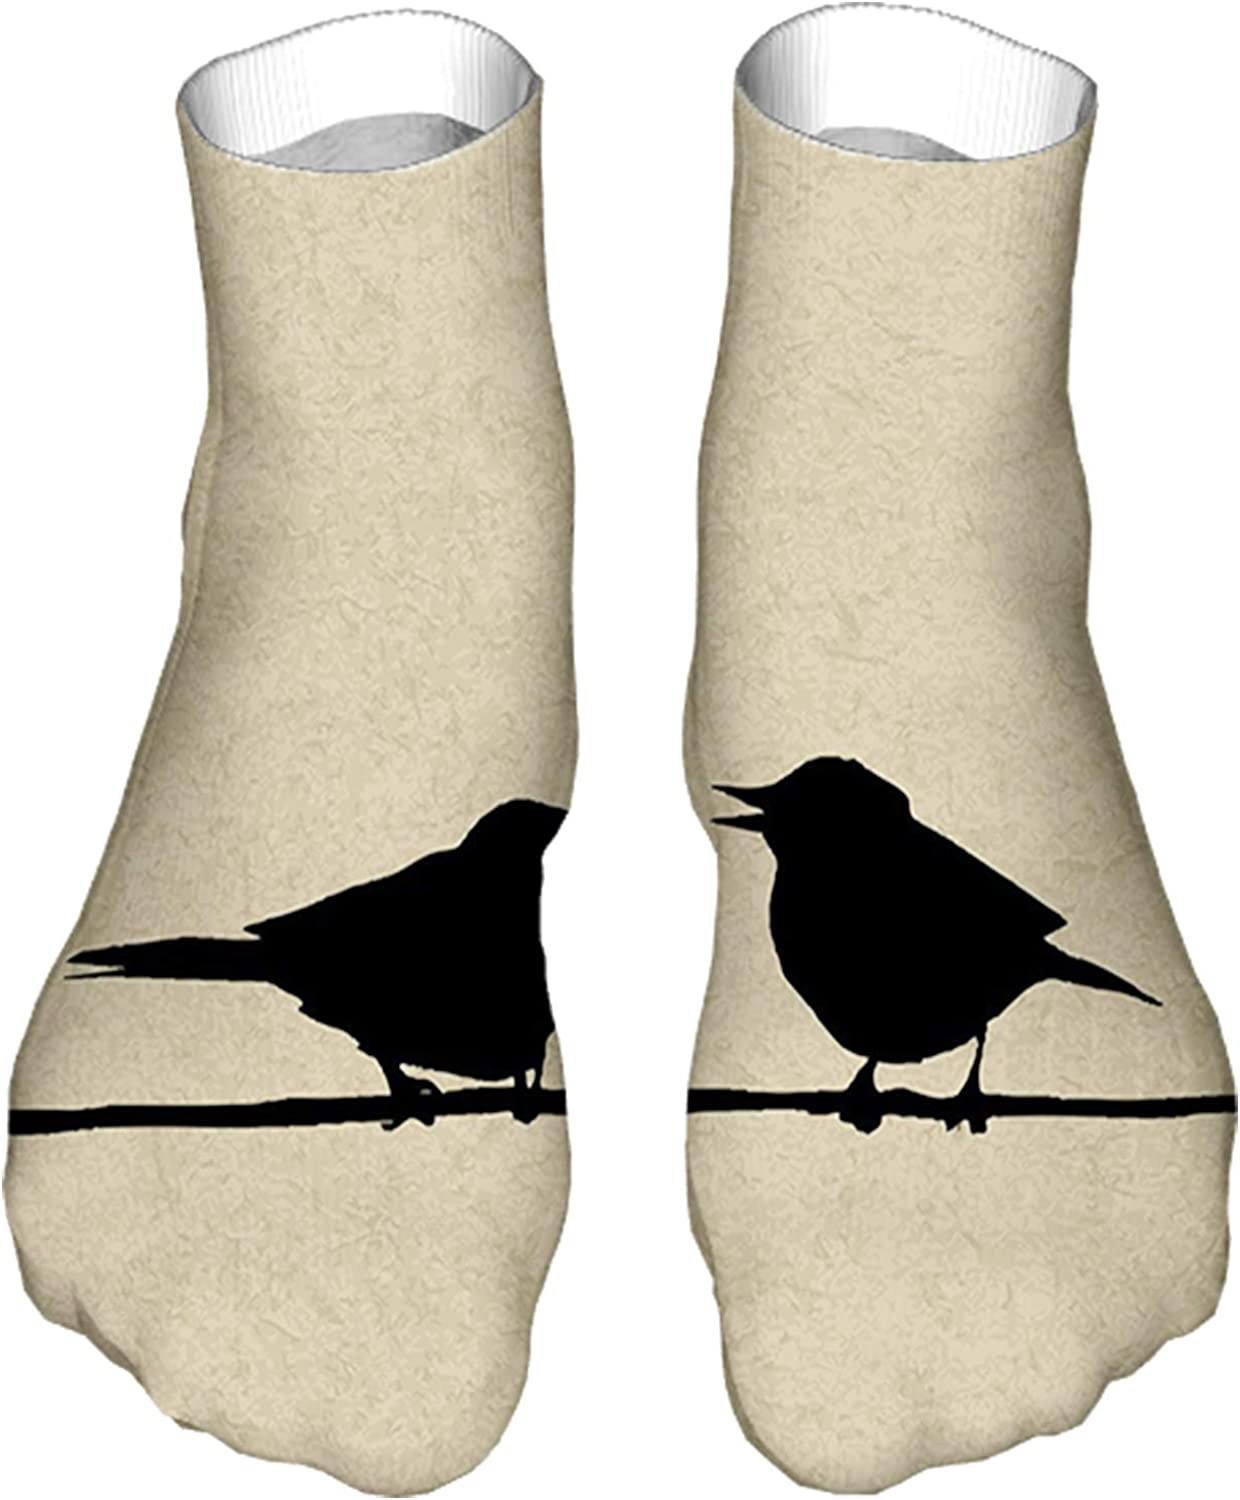 Men's and Women's Funny Casual Socks Grunge Worn Out Background with Bird Silhouettes on a Wire